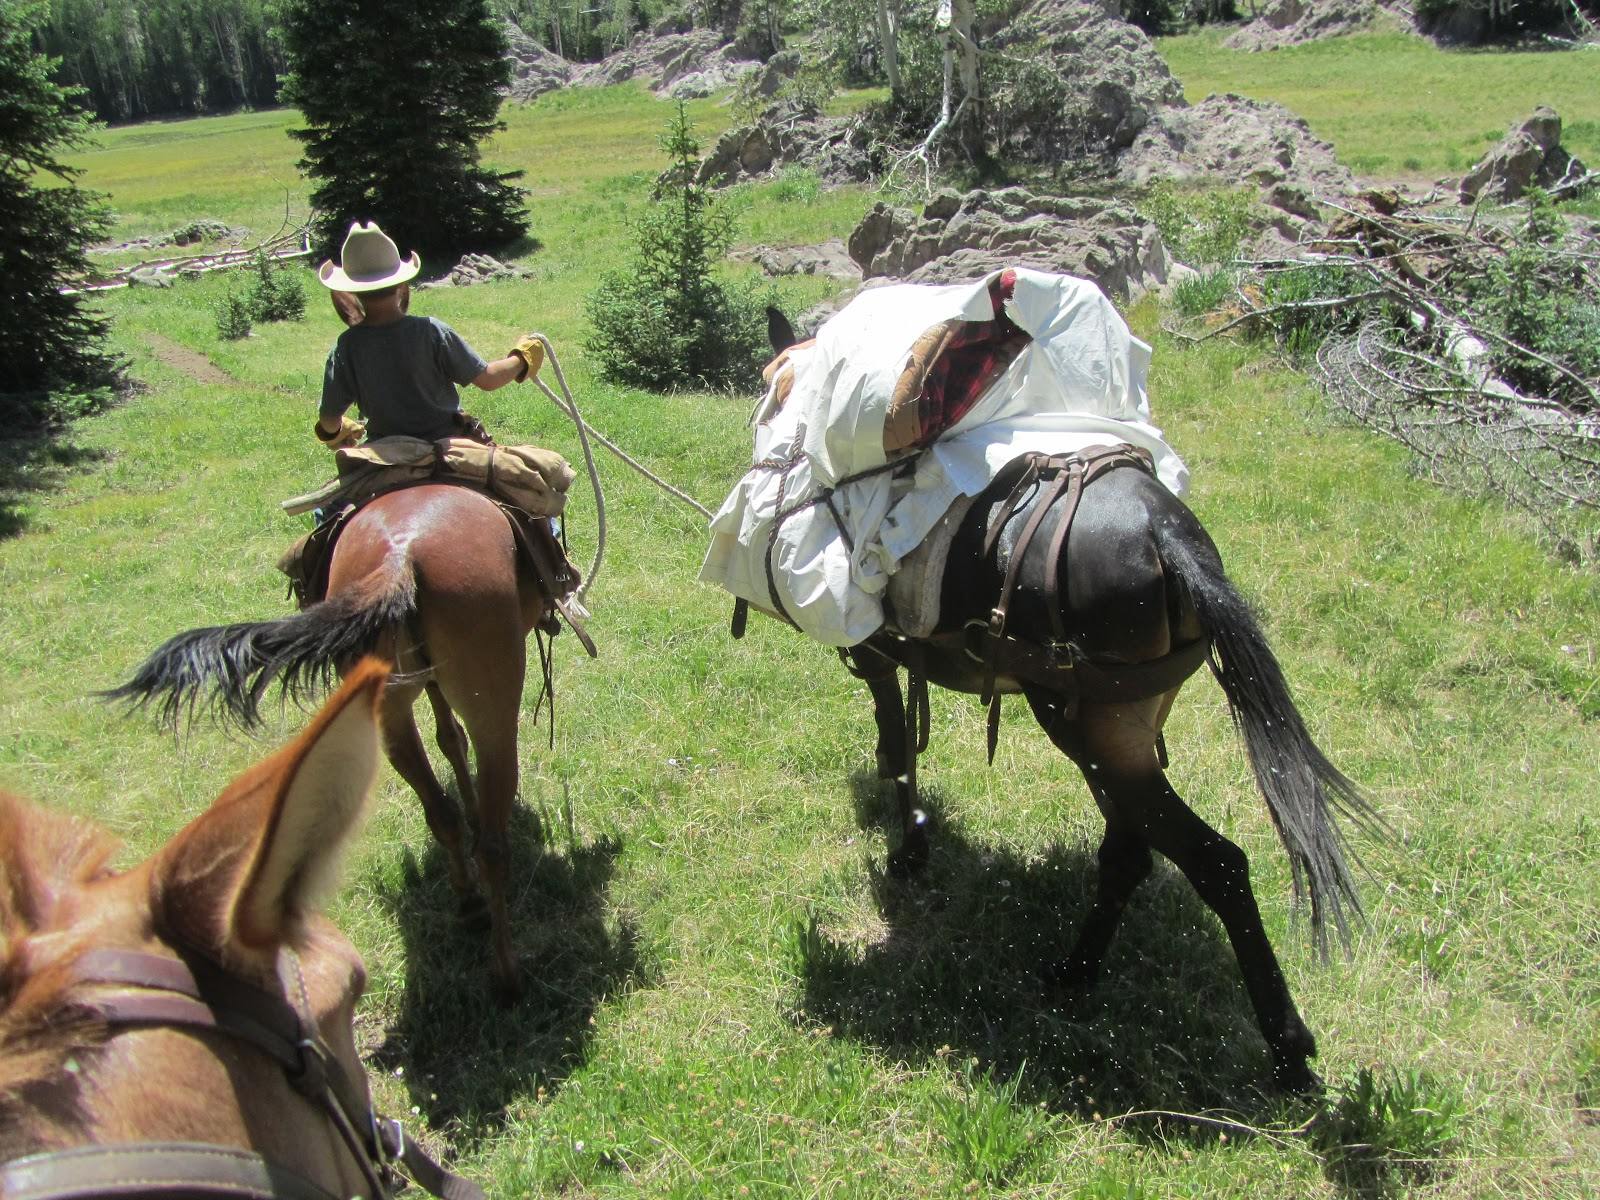 Pack Mule Pictures to Pin on Pinterest - PinsDaddy